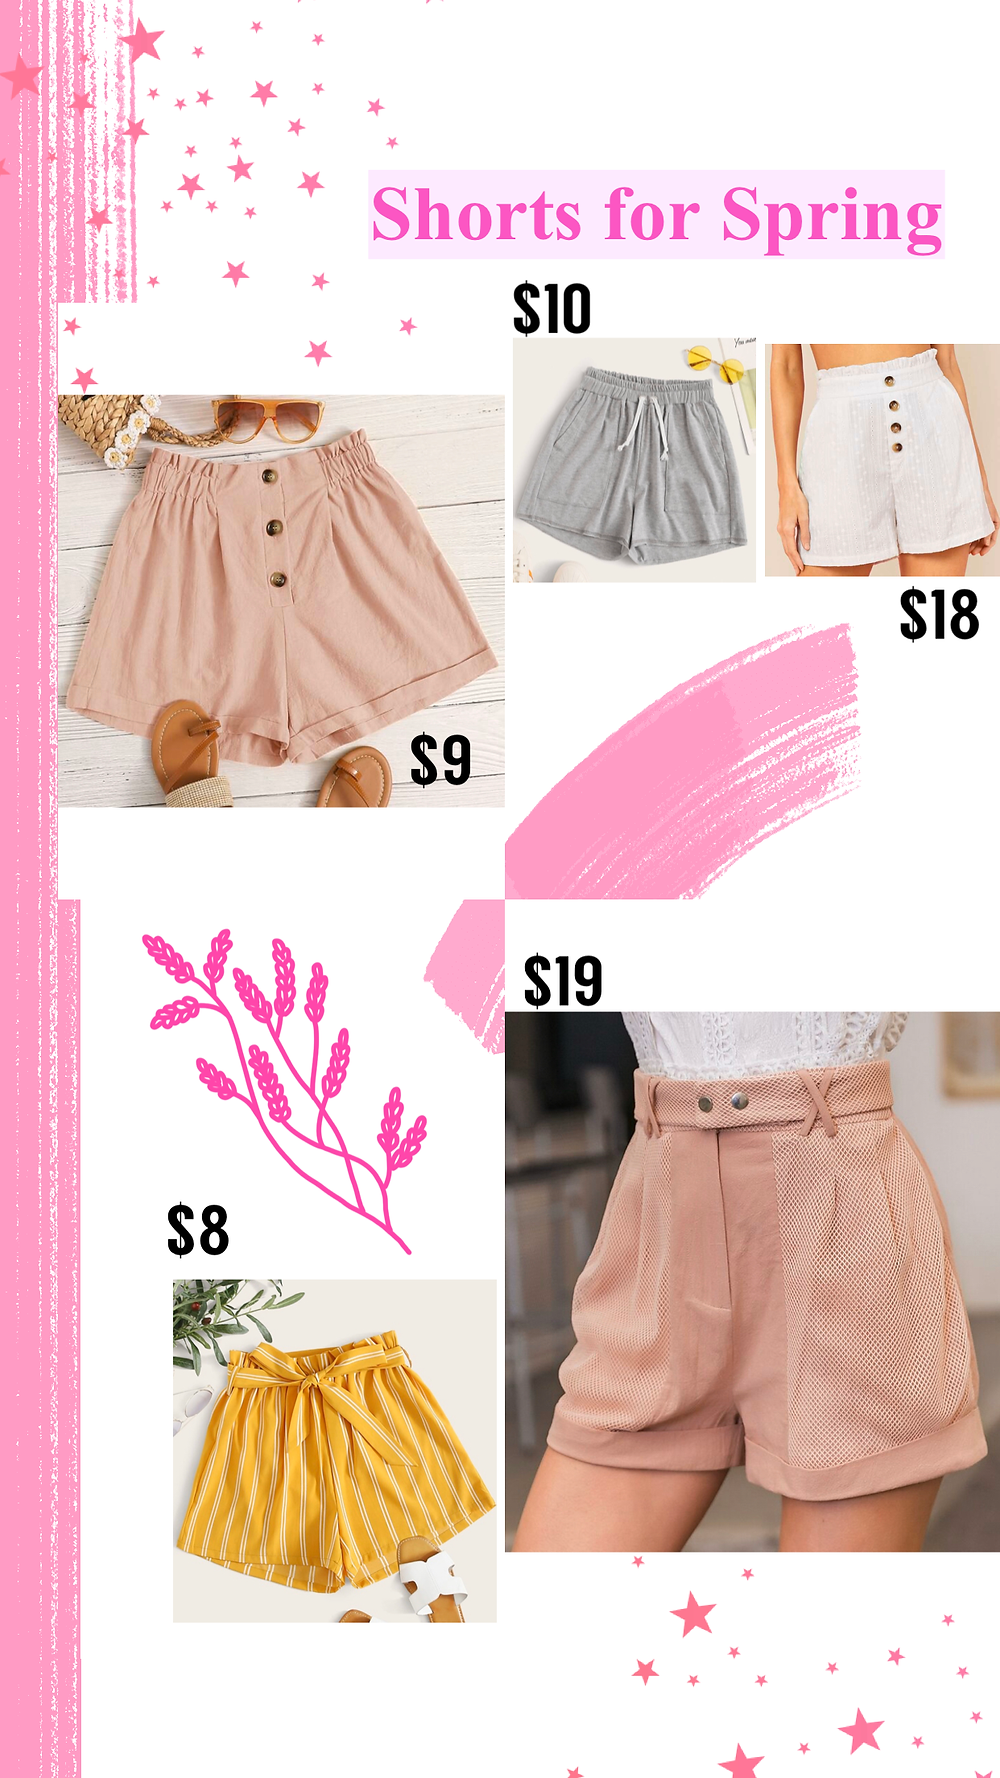 Affordable cute shorts for spring from Shein